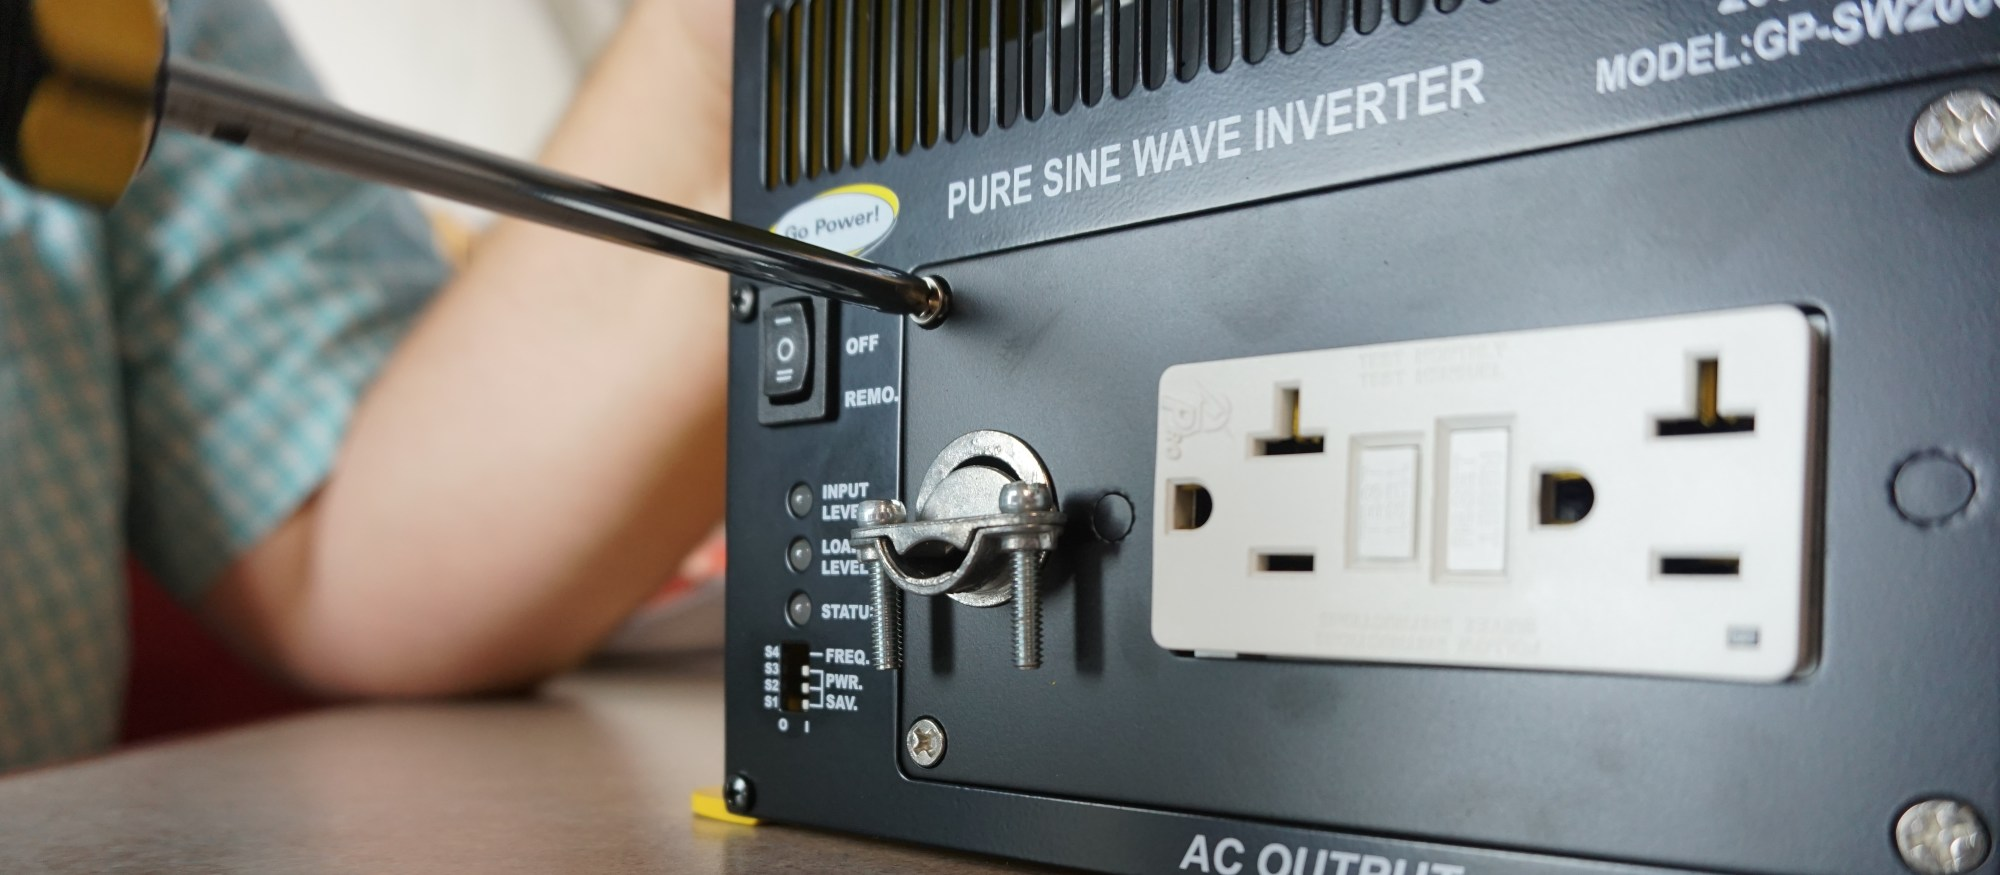 hight resolution of at outside supply we are ready to address any power inverter questions you may have we carry only inverters we feel are top quality and can support these